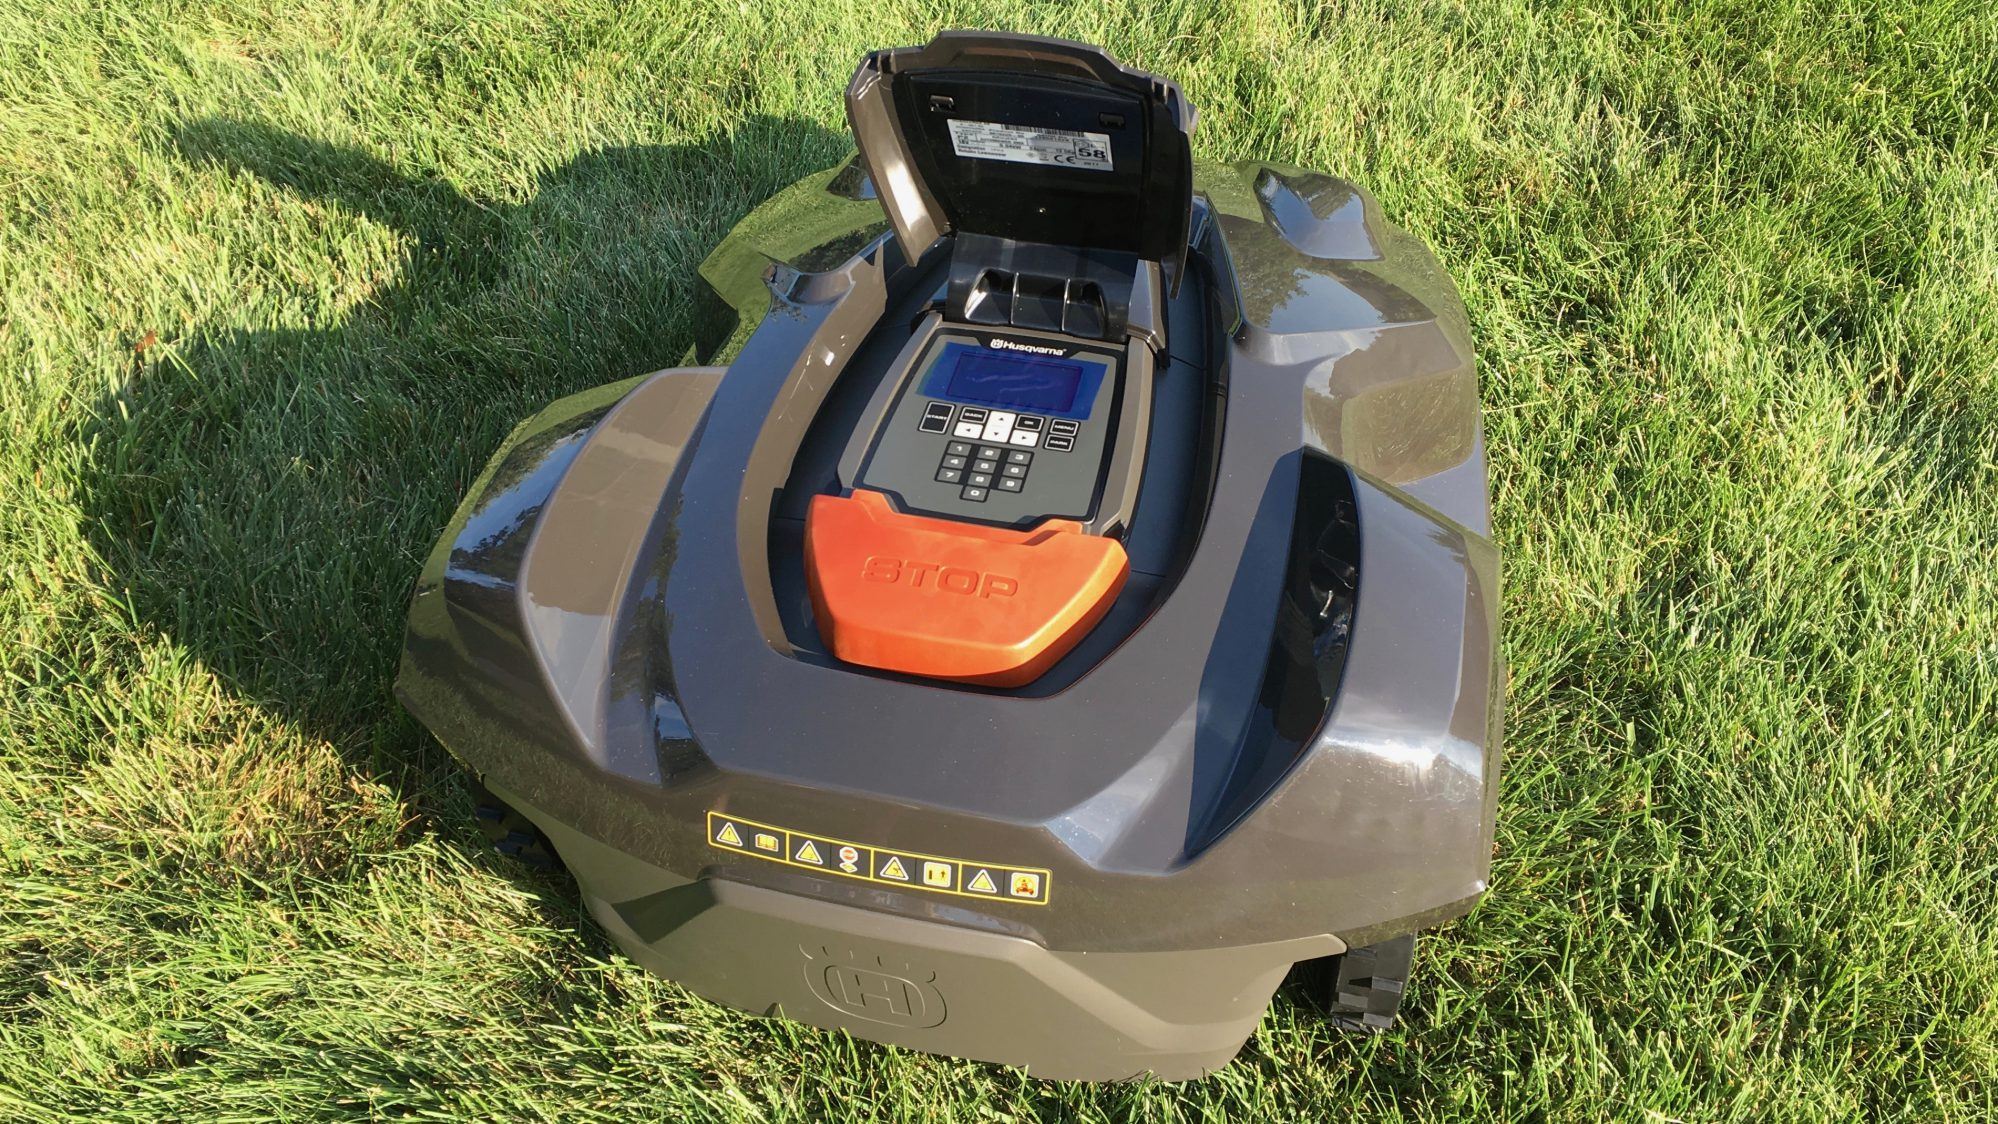 Husqvarna Automower The Ios Controlled Mower That Cuts